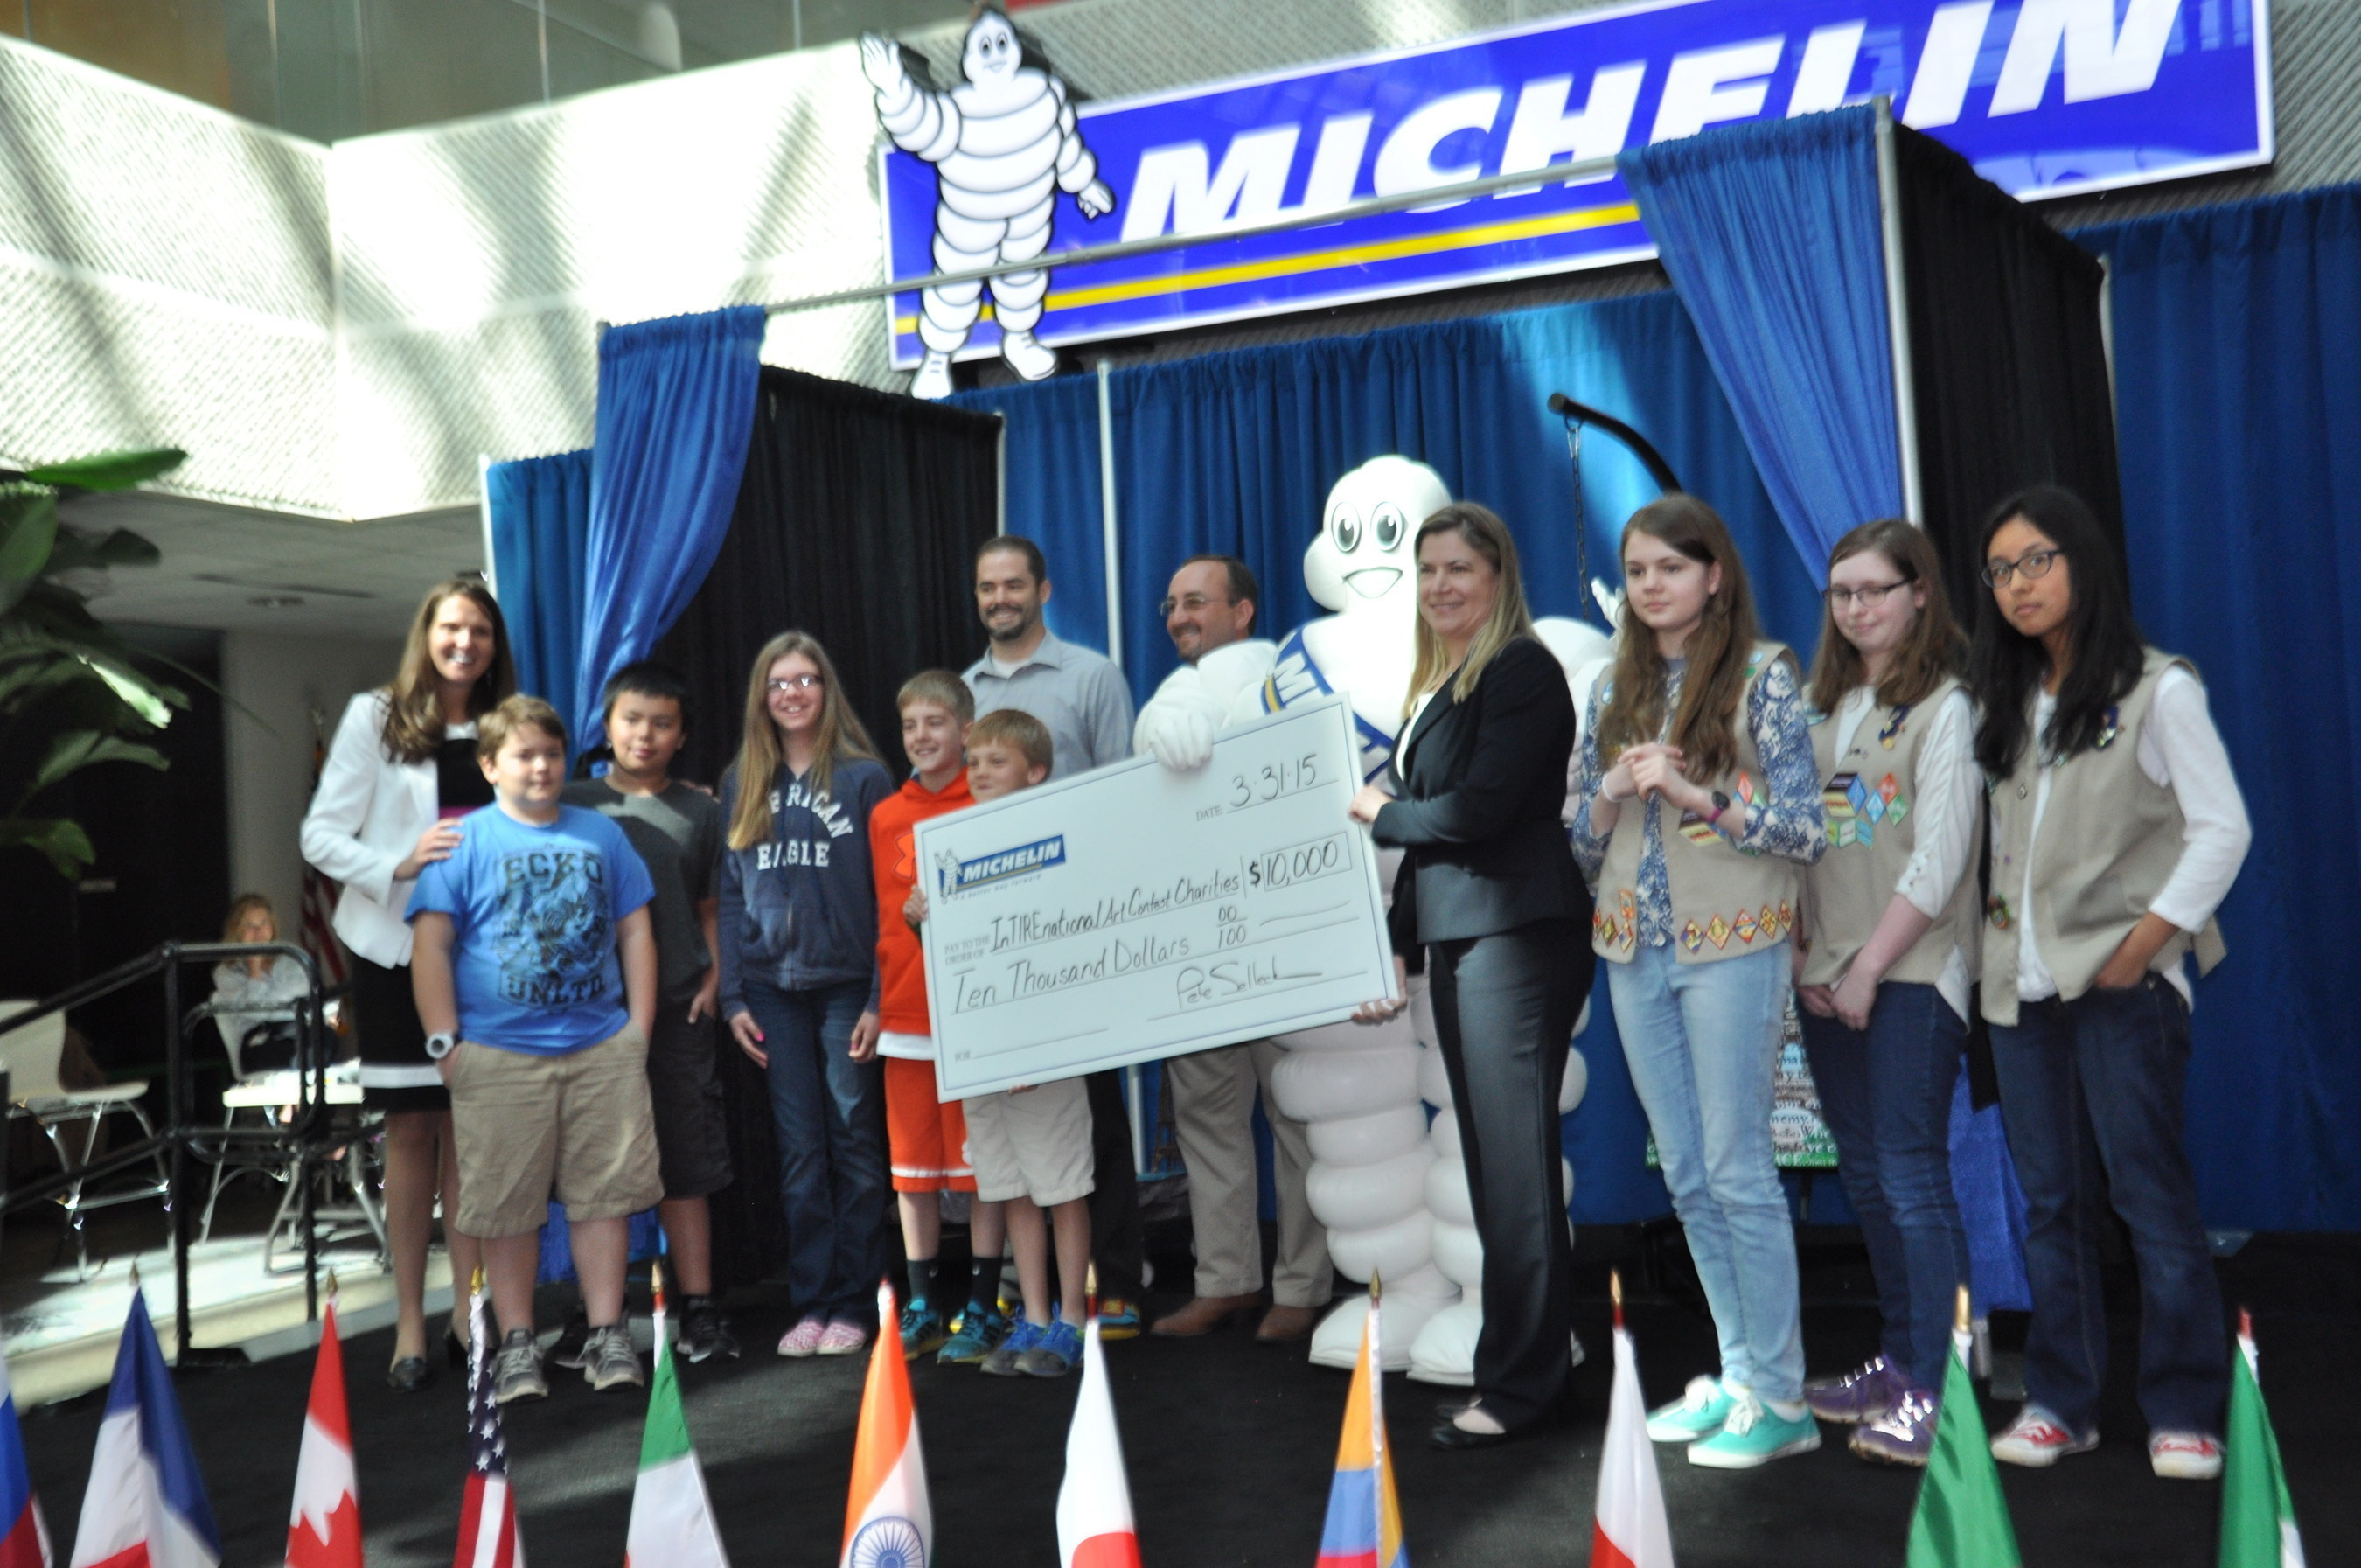 About Michelin